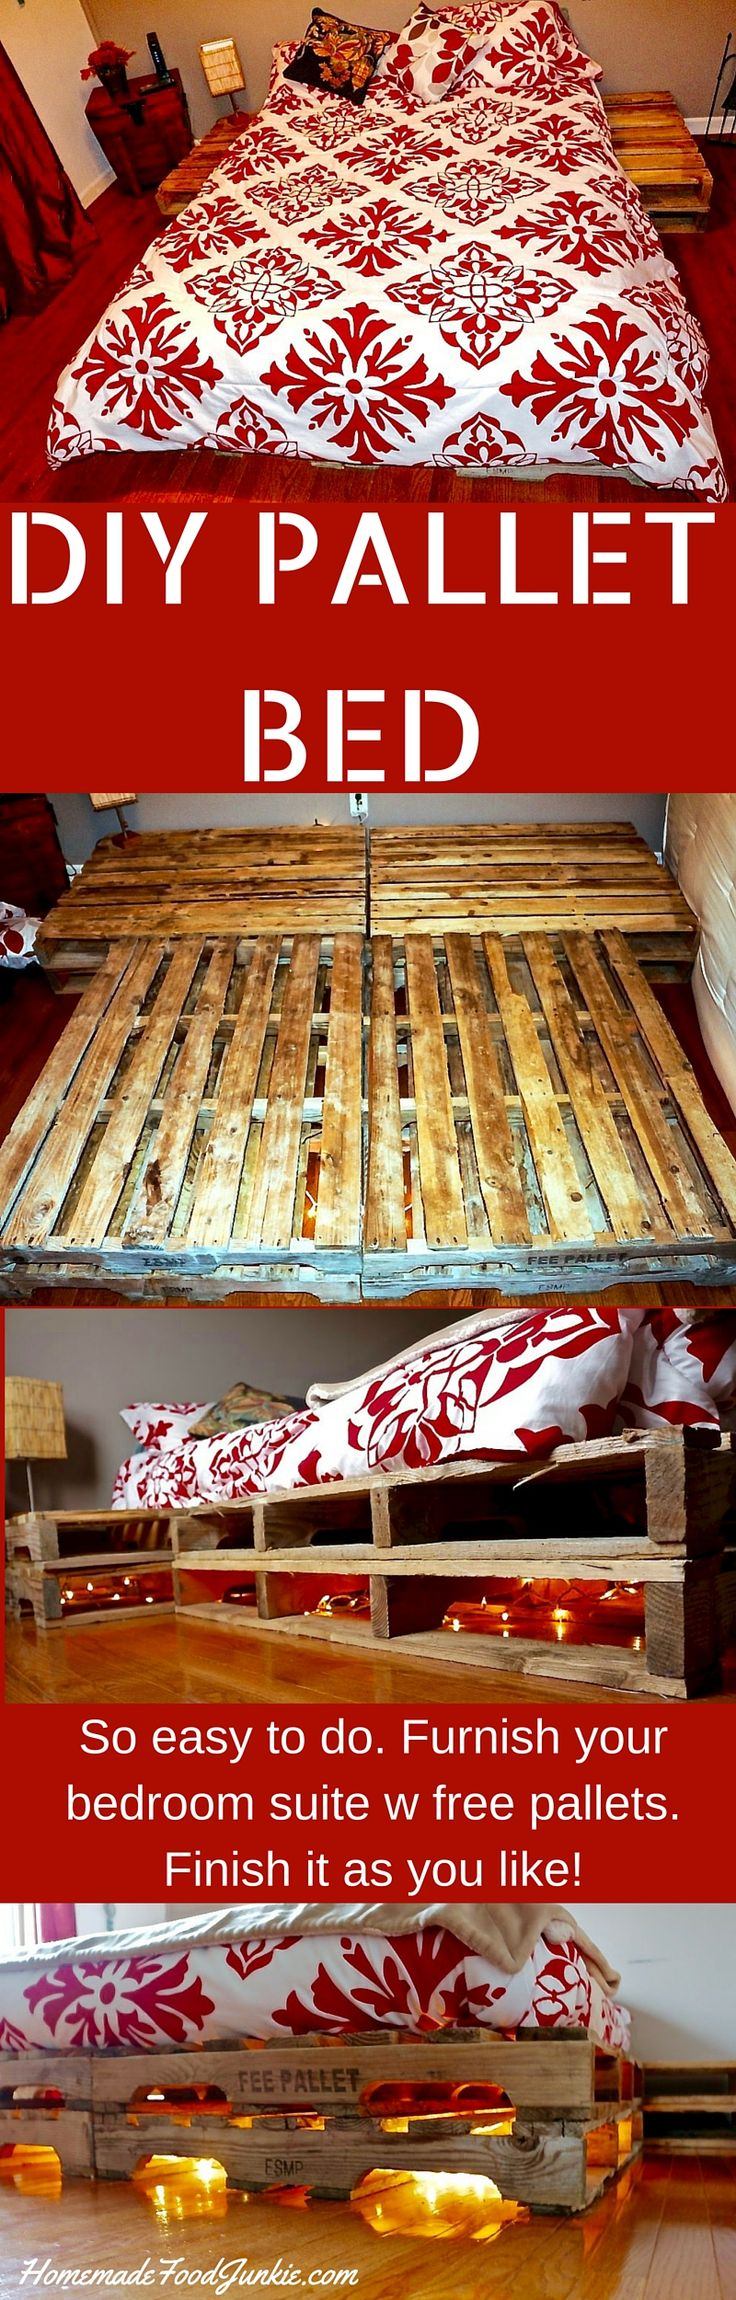 DIY Pallet Bed with tables. No construction skills necessary!